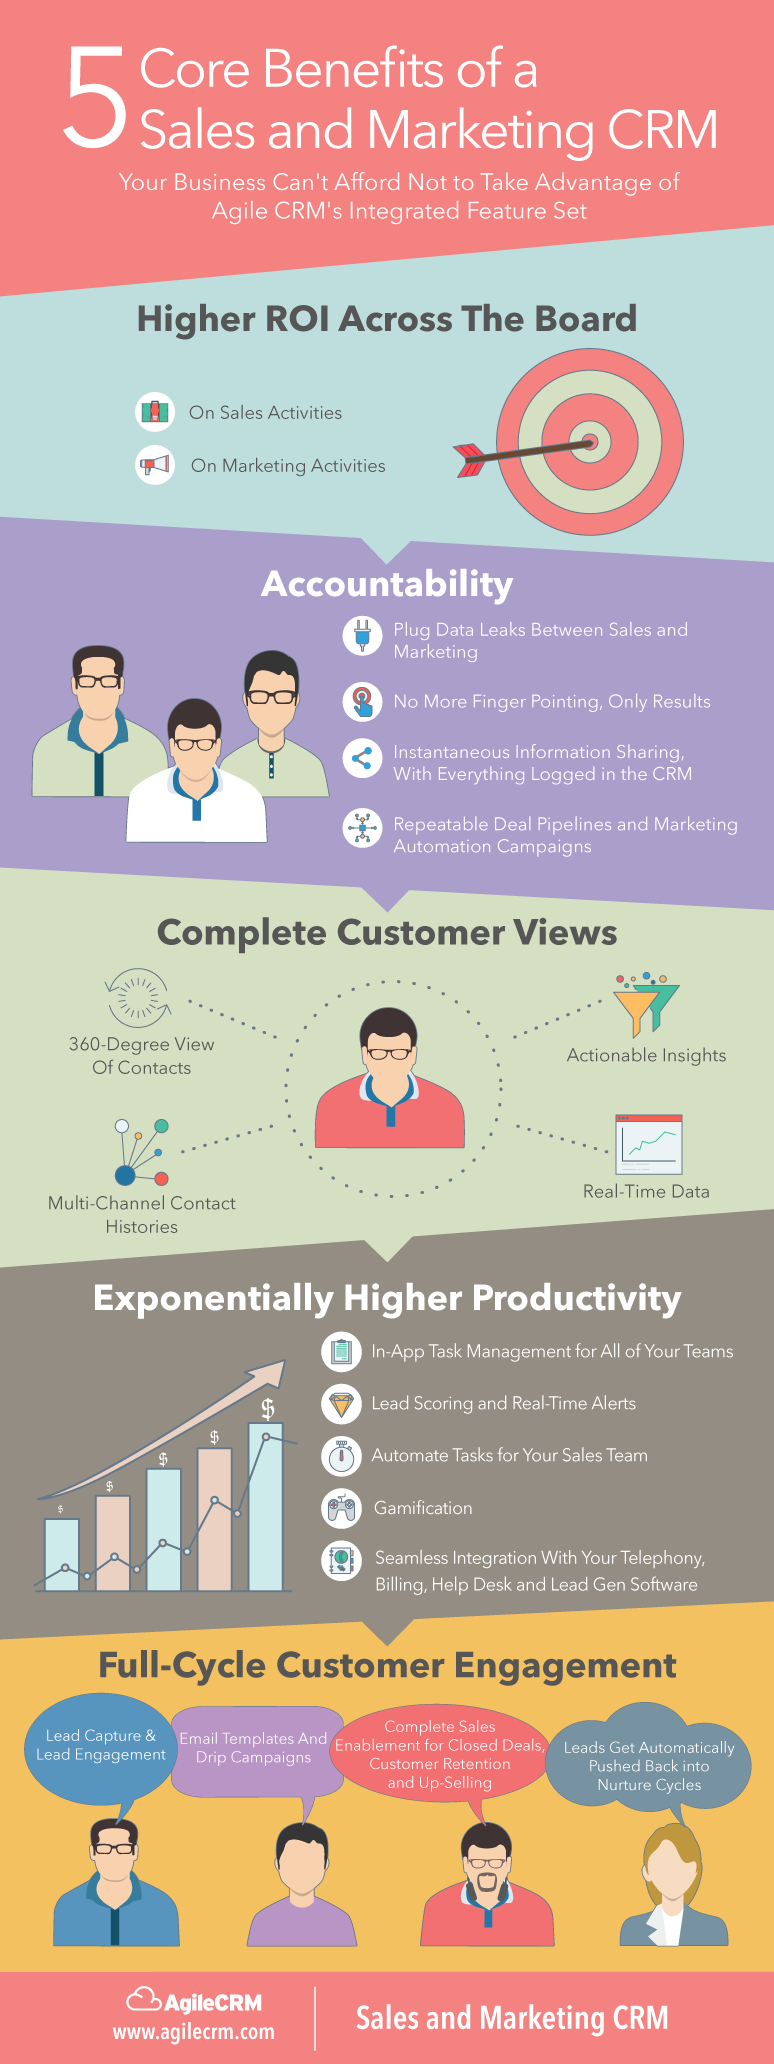 5 Core Benefits of a Sales and Marketing CRM